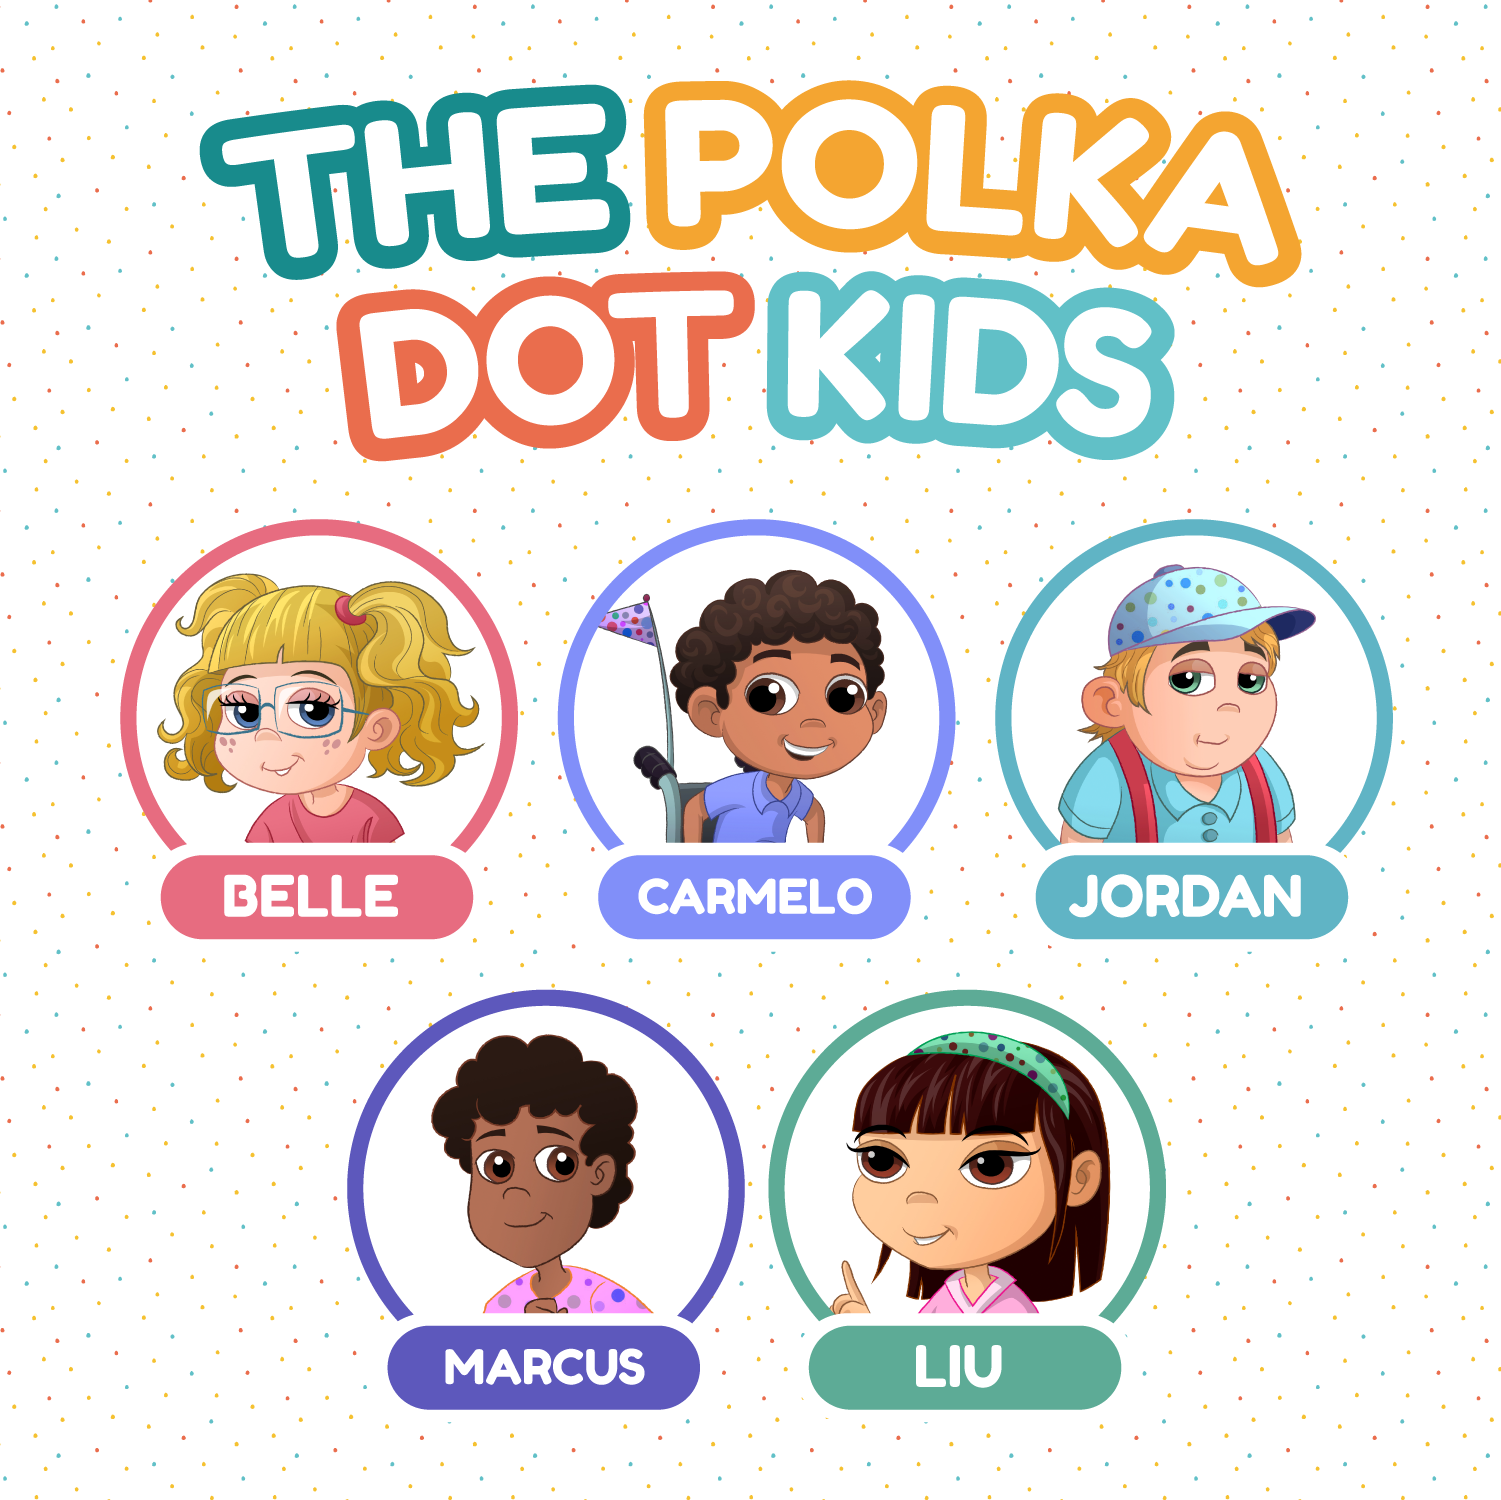 The Polka Dot Kids are not your average heroes! Together this group of typical and special needs kids solve mysteries and fight crime in the most unusual ways.